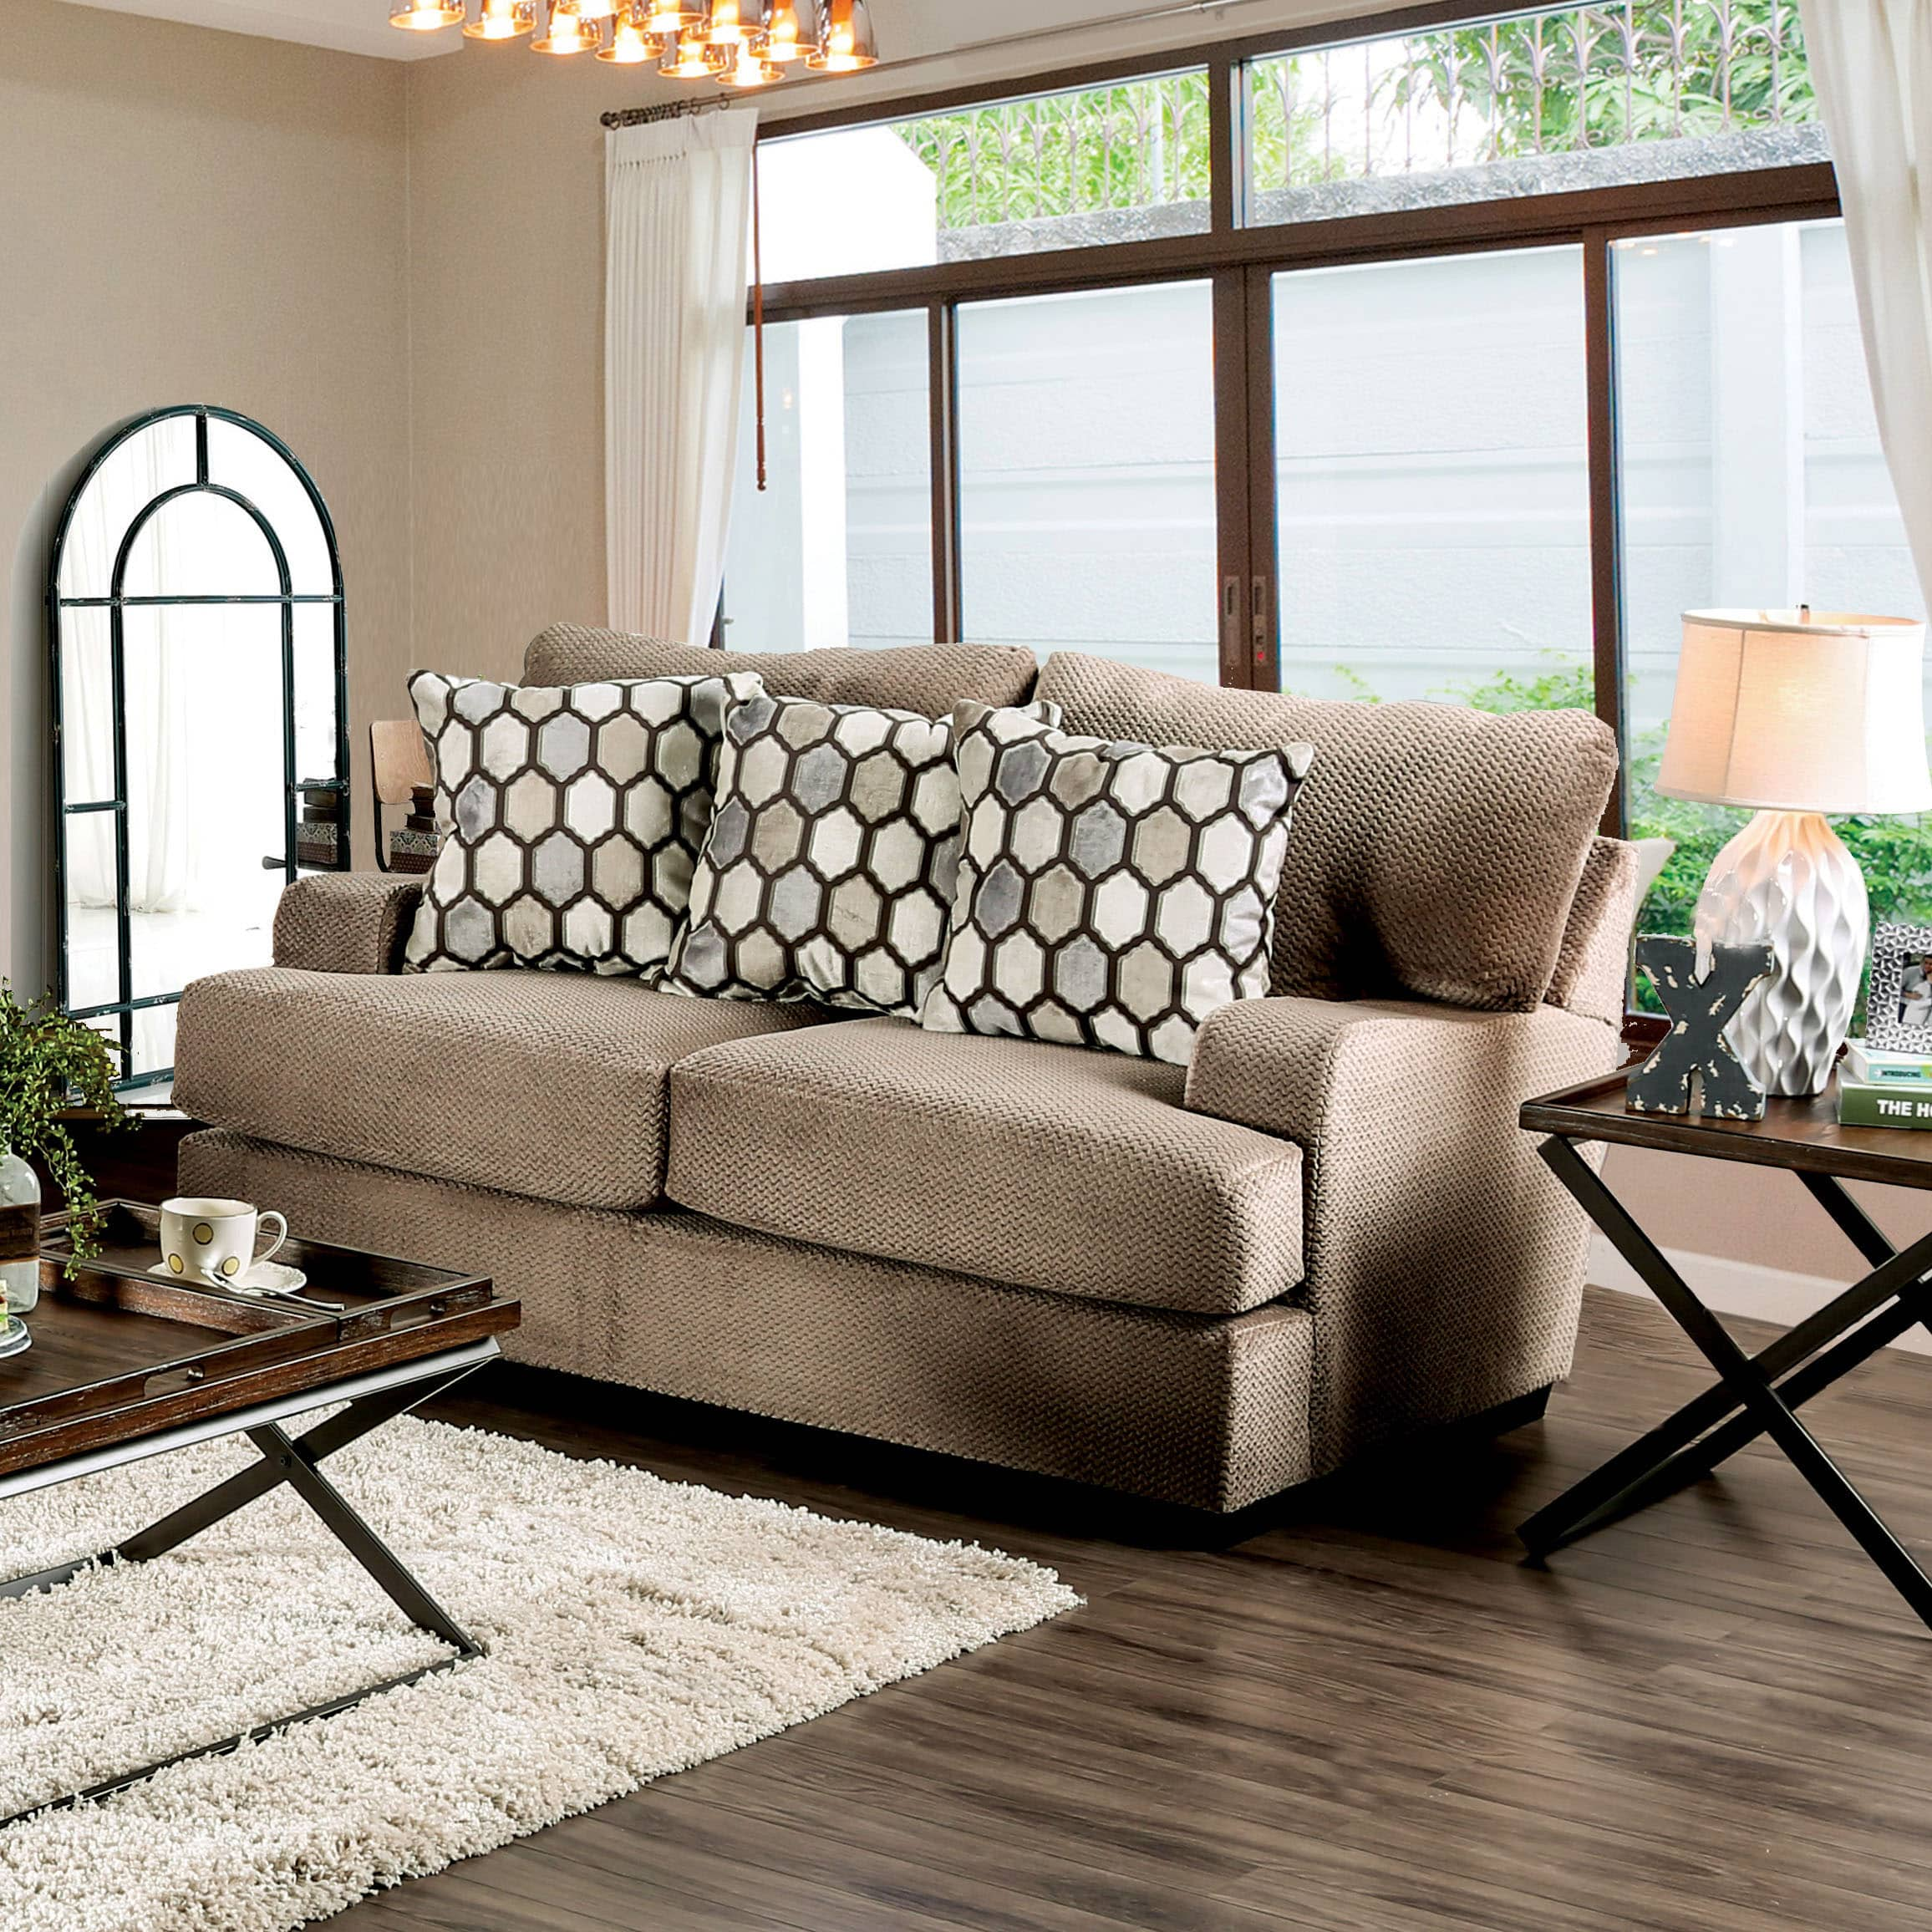 Furniture of America Sheila Transitional Modern English S...